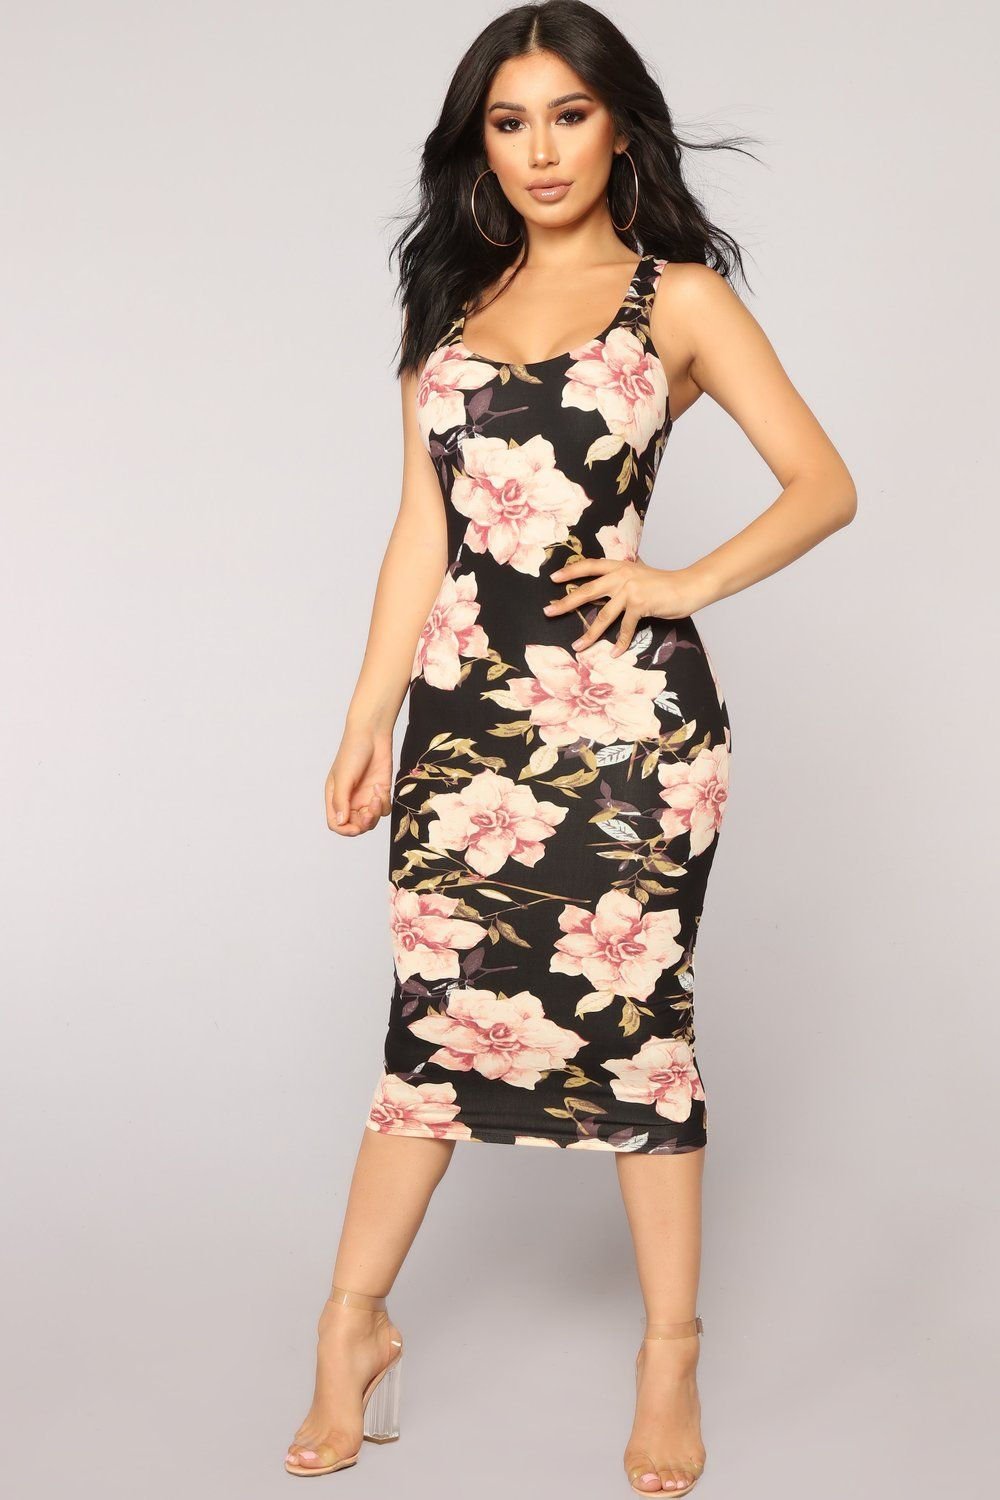 Need More Flowers Dress Black Fitted Floral Dress Bodycon Floral Dress Floral Bodycon Dress Outfit [ 1500 x 1000 Pixel ]